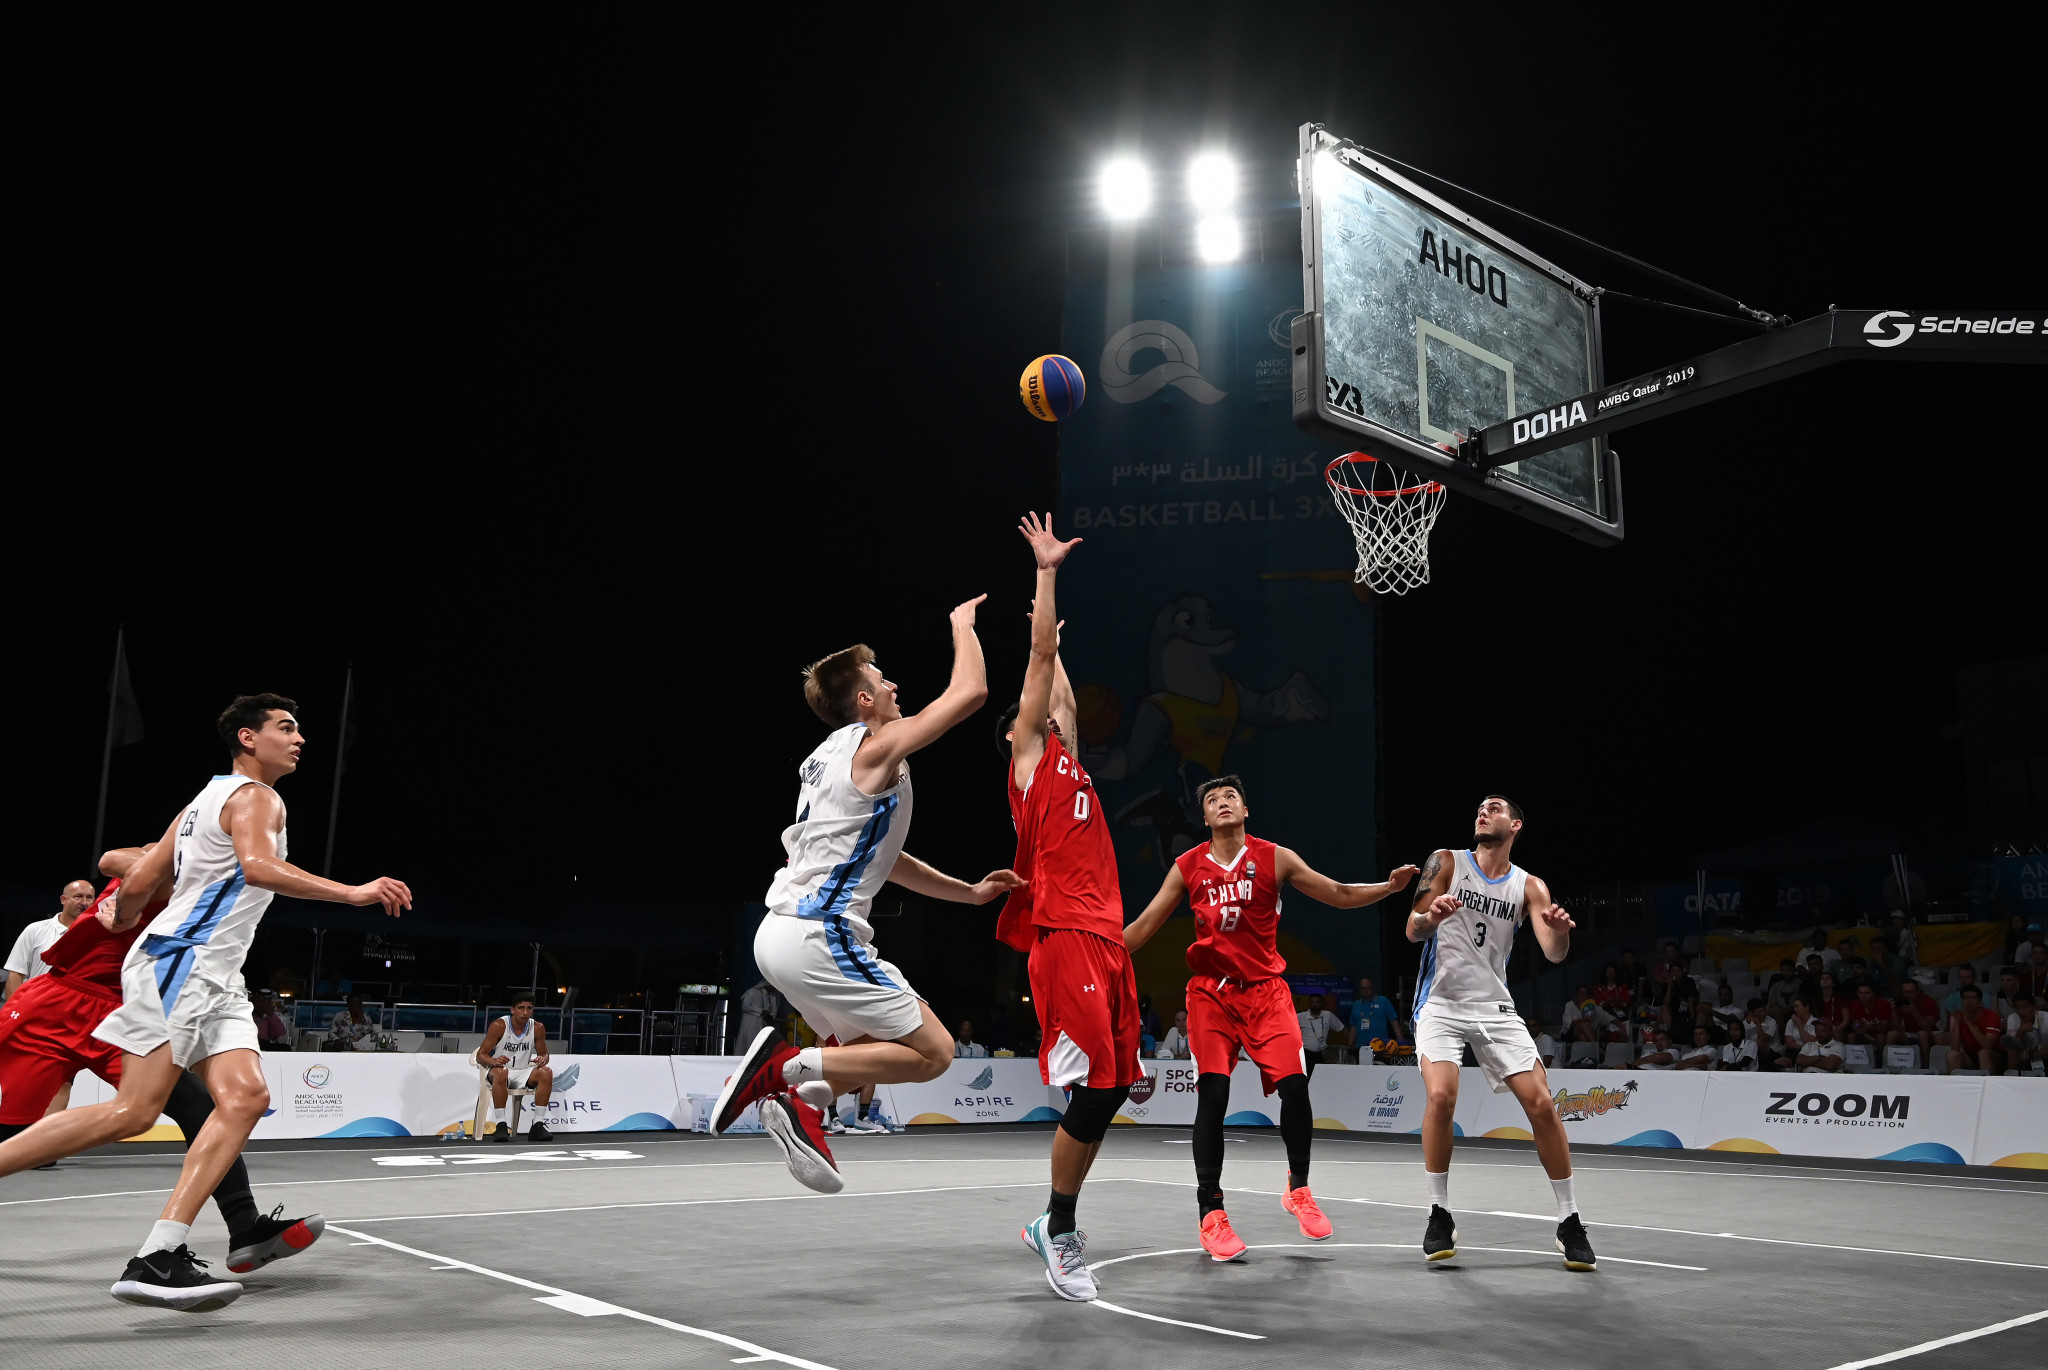 FIBA postpone 3x3 basketball Olympic qualifier in India over coronavirus